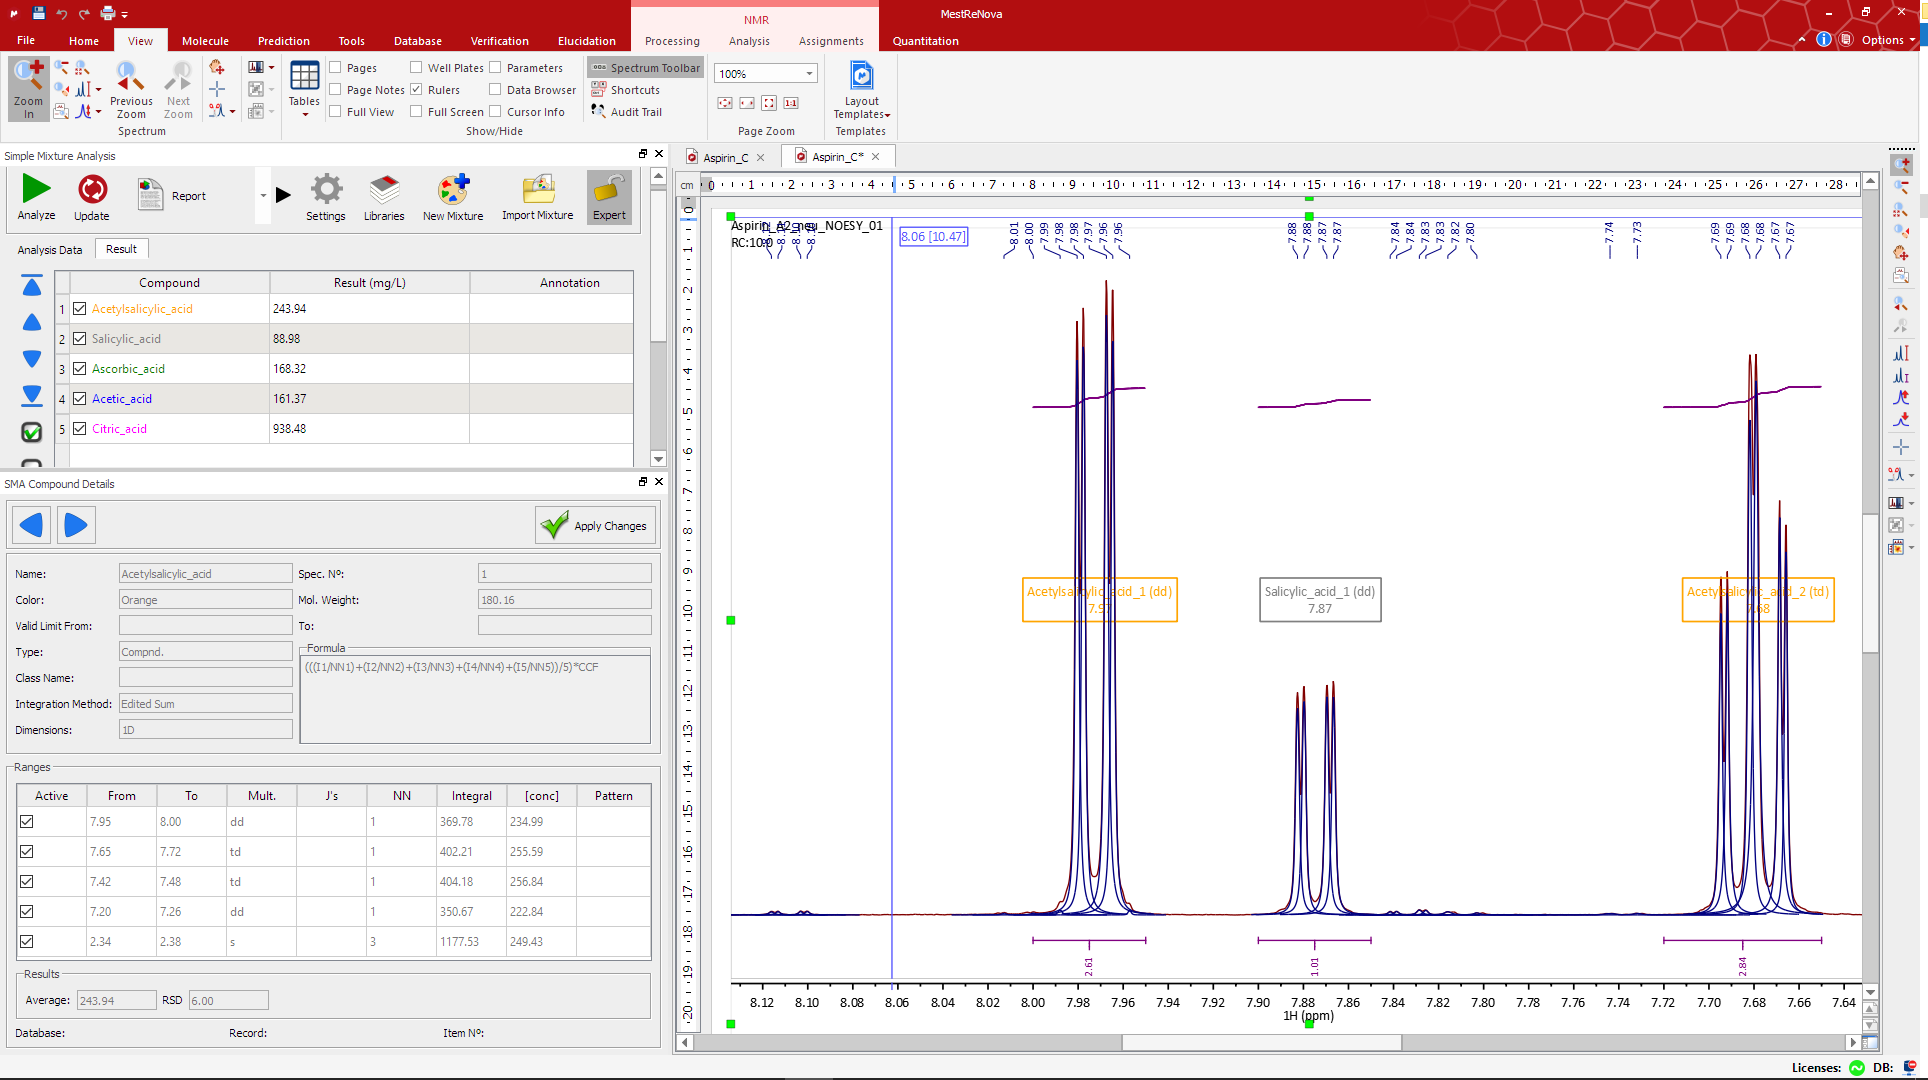 Sma mestrelab the sma interface interacts directly with the nmr data gamestrikefo Images